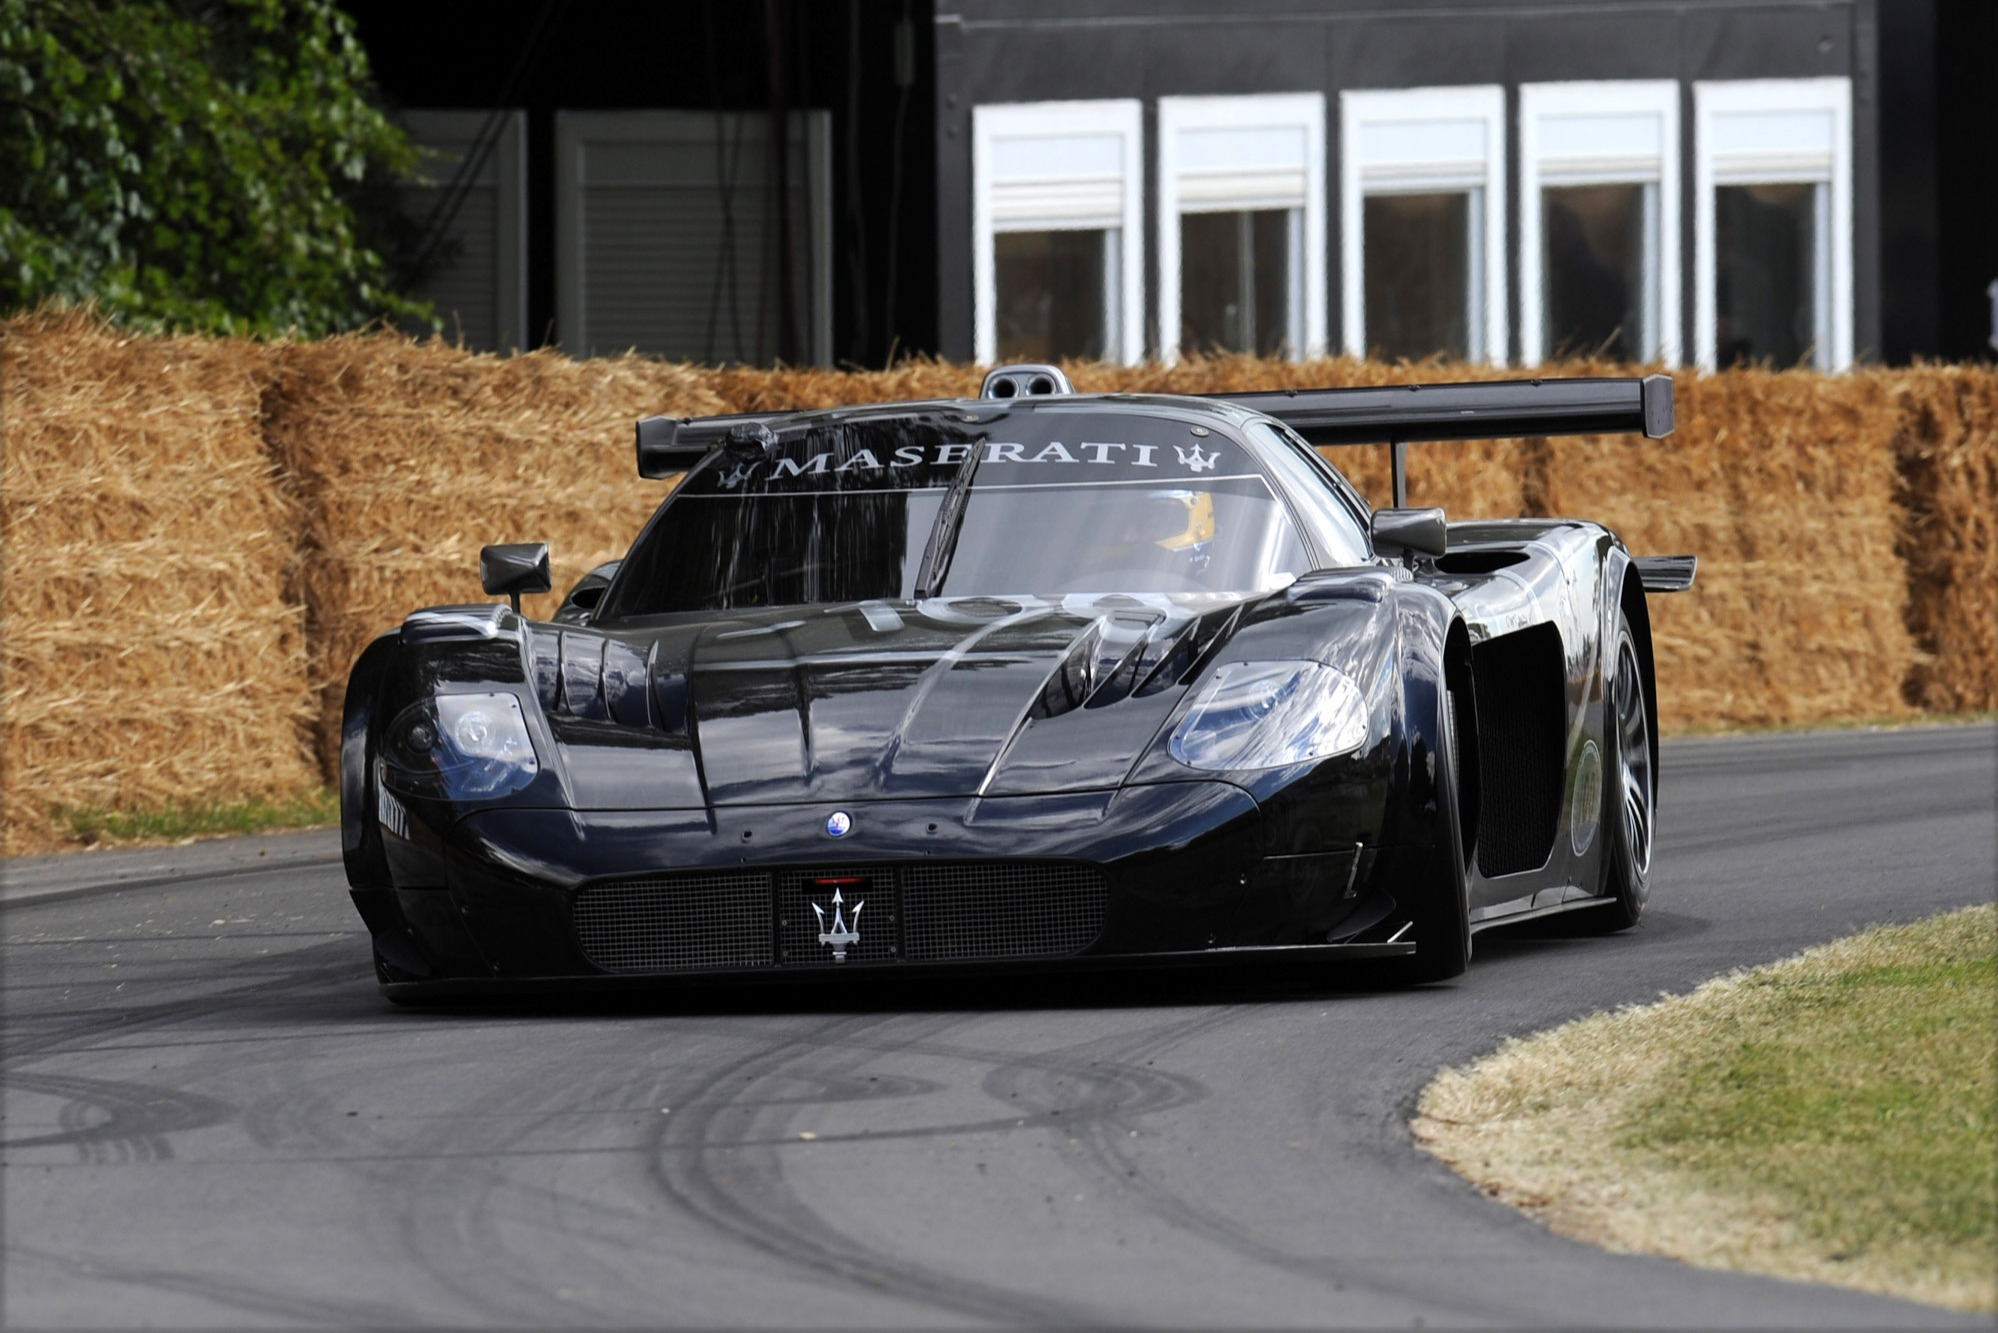 Bartels continues to provide customer support to MC12 owners, and thrashed one up the Goodwood hill in 2014